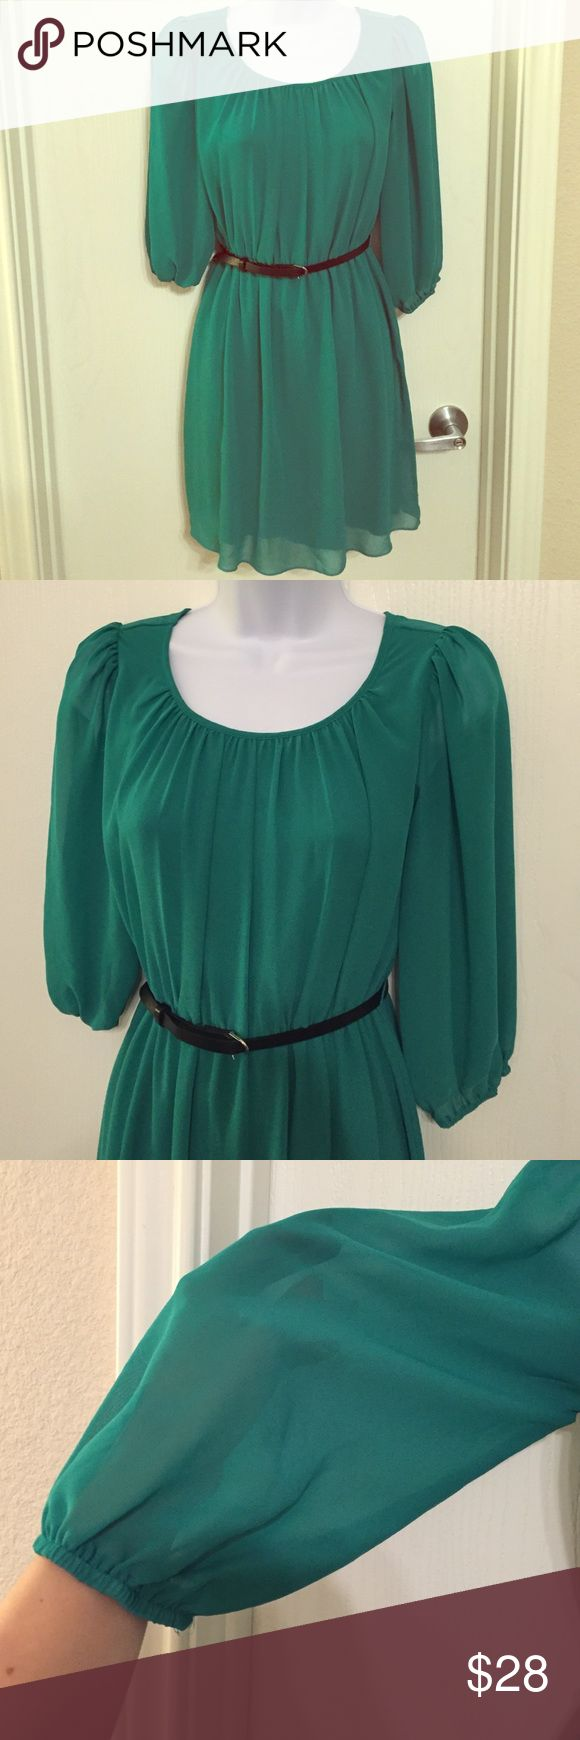 Green dress Pretty green dress, sheer 3/4 sleeves. Fully lined with sheer shell. Worn once. Does not come with belt. Dresses